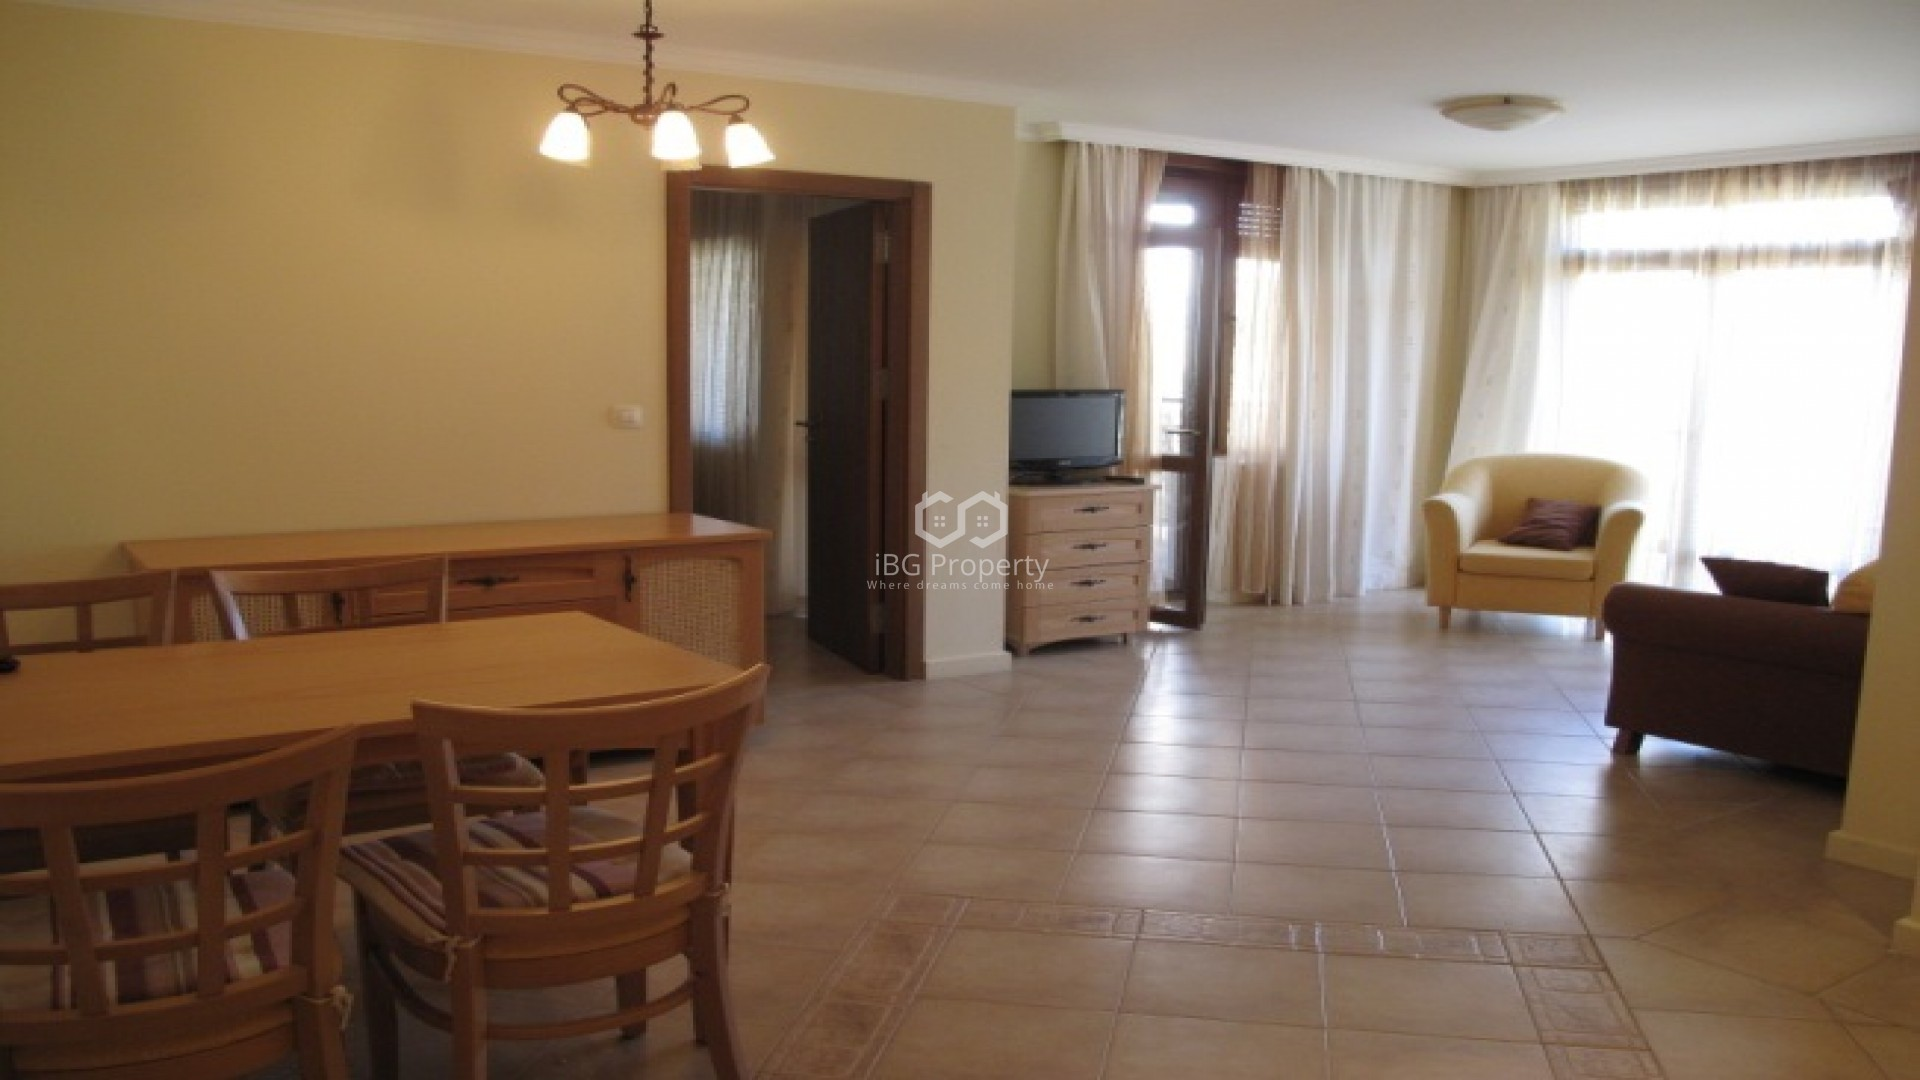 One bedroom apartment Sozopol 60 m2